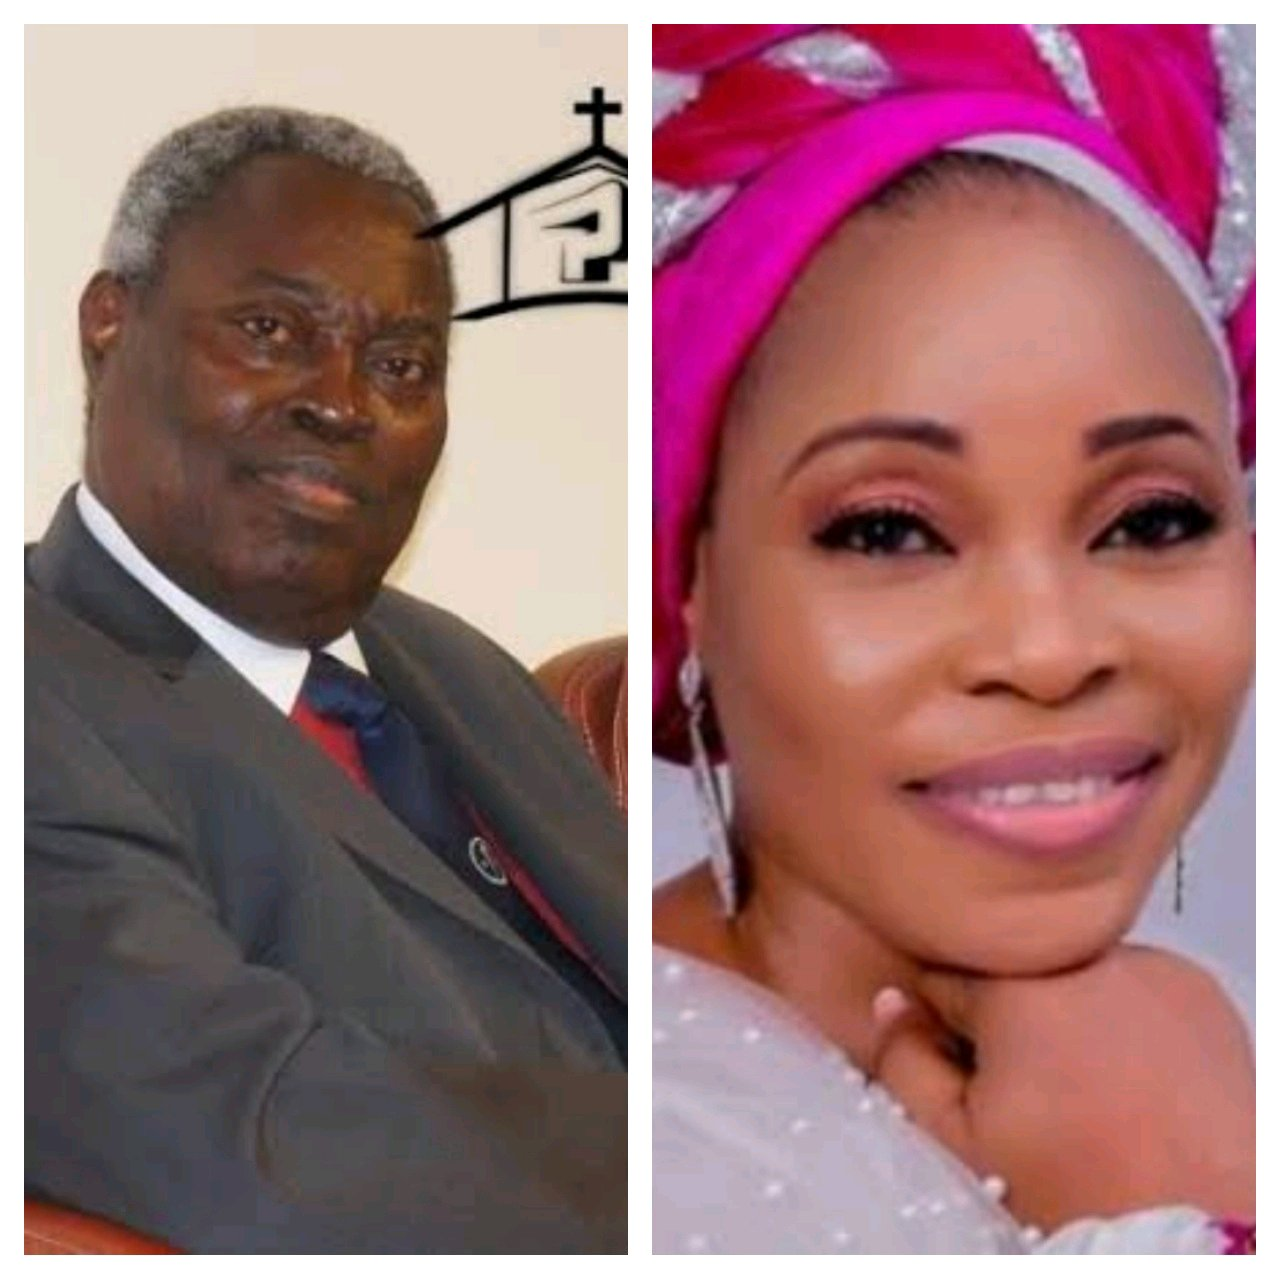 3 Top Female Gospel Ministers Pastor Kumuyi May Invite to minister in one of his crusades